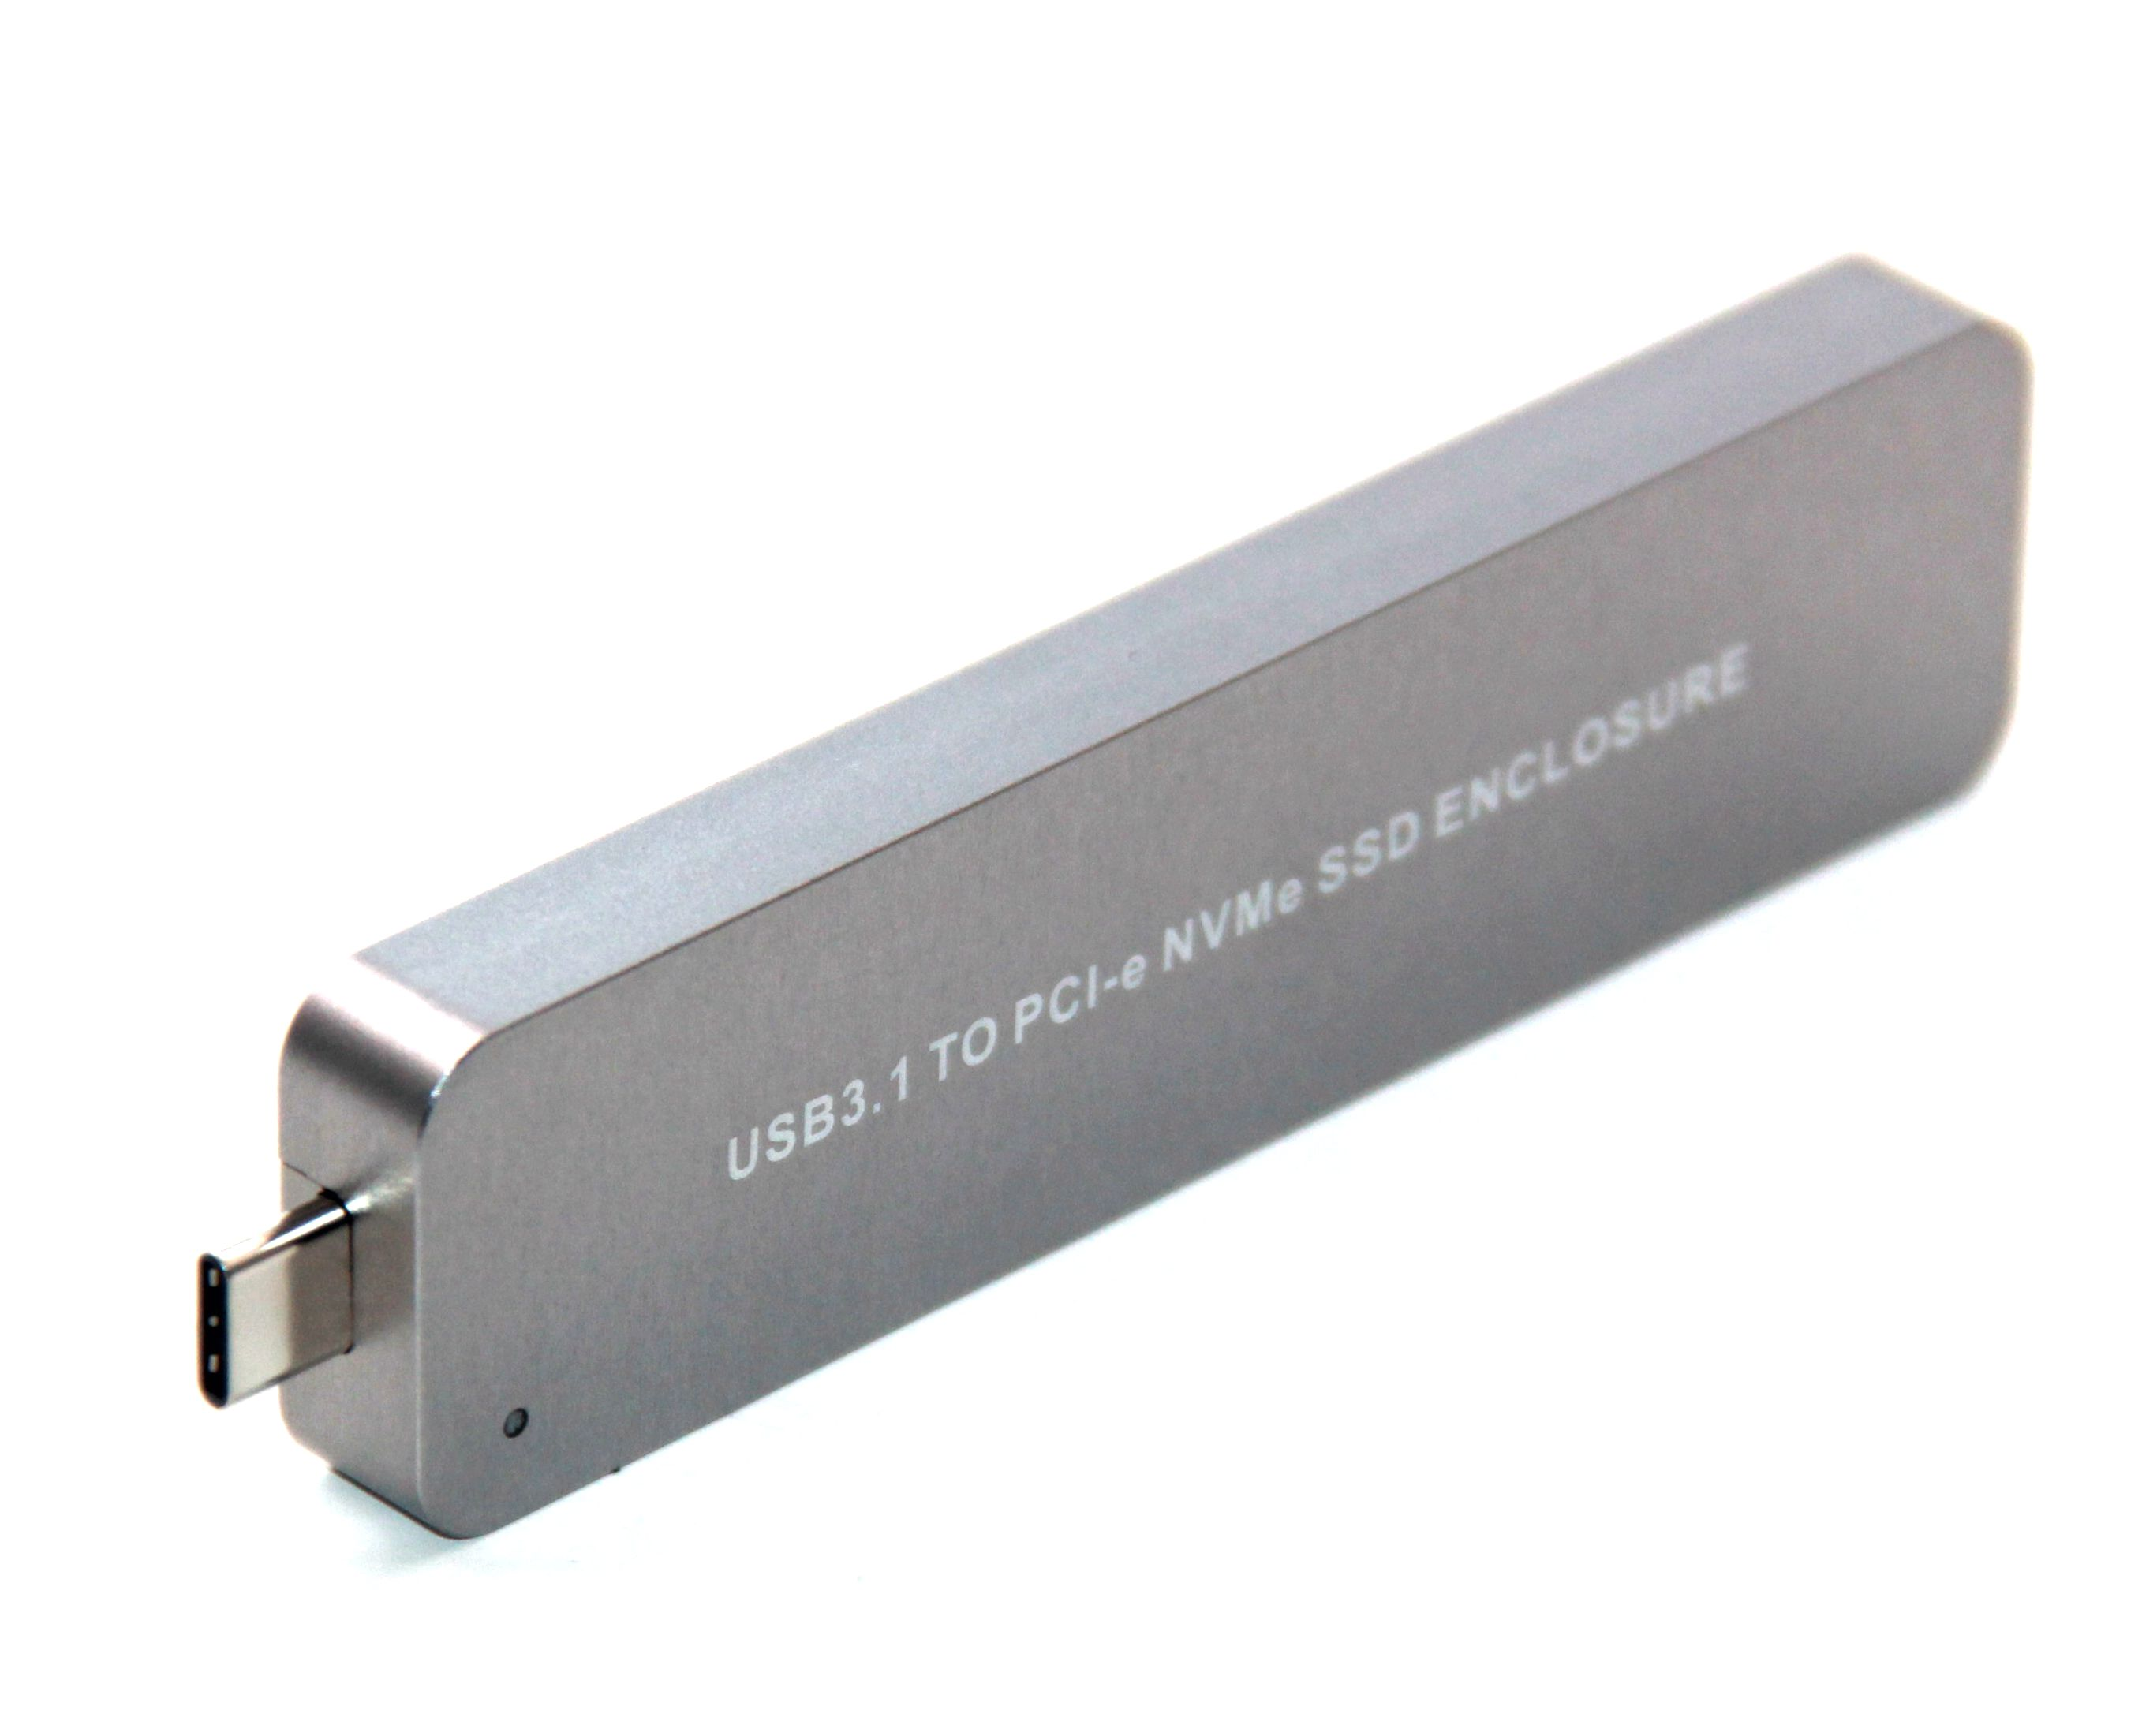 L Nvme To Usb Adapter, 10 Gbps Usb3.1 Gen 2 M.2 Pcie Ssd To TYPE-C Card , Usb To M2 Solid State Drive (Key M) Fixed Type